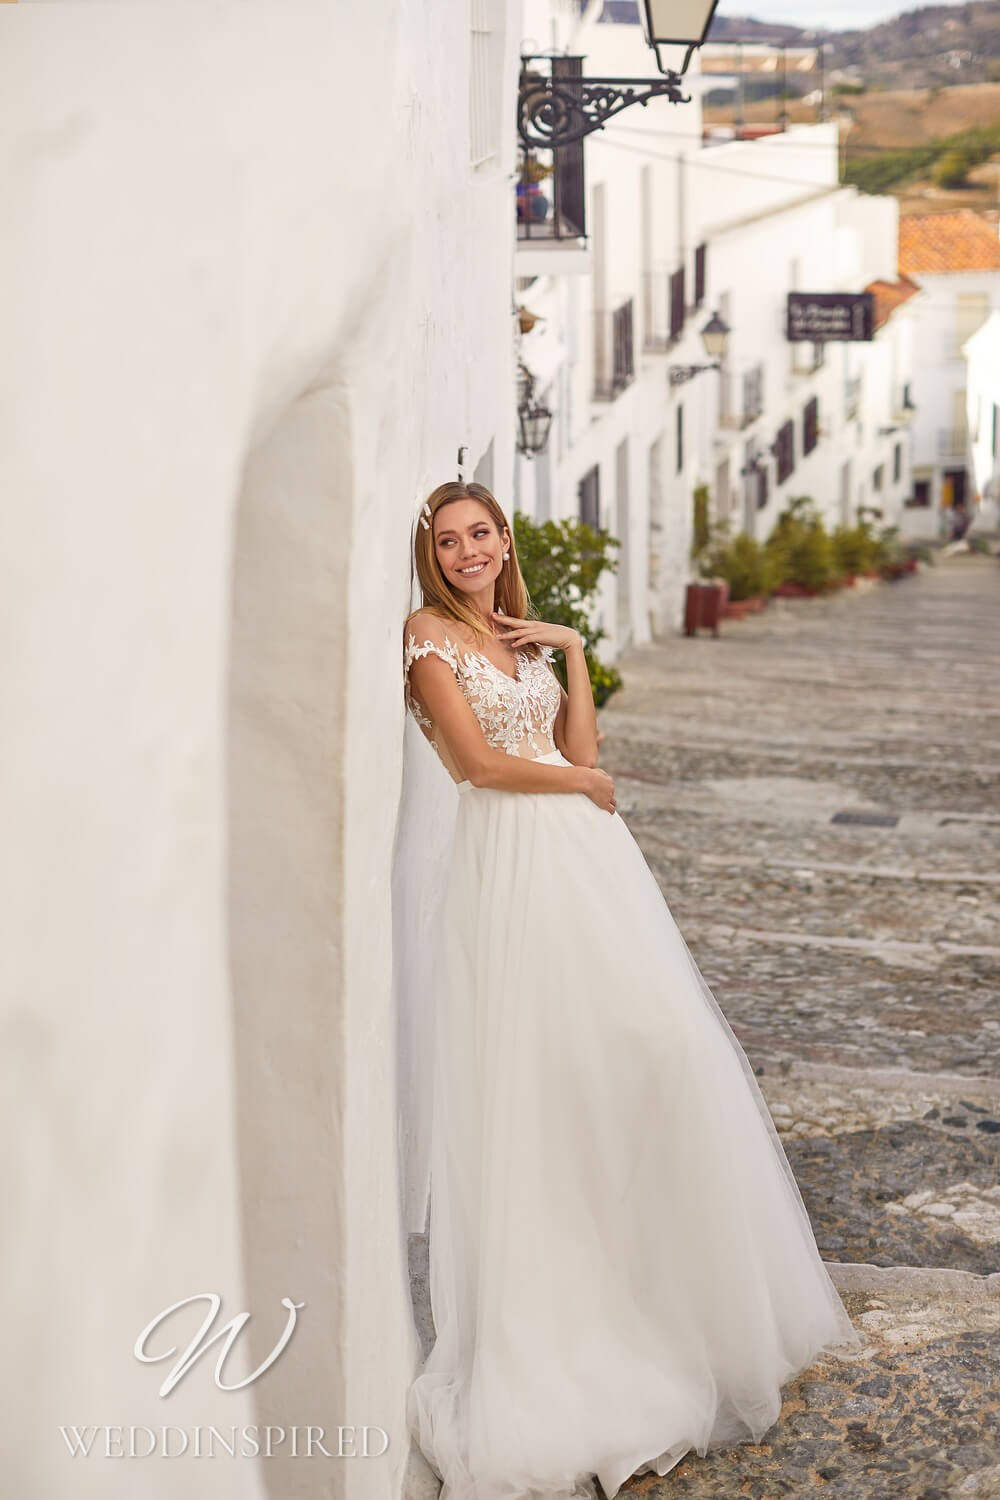 An Essential by Lussano 2021 tulle A-line wedding dress with cap sleeves